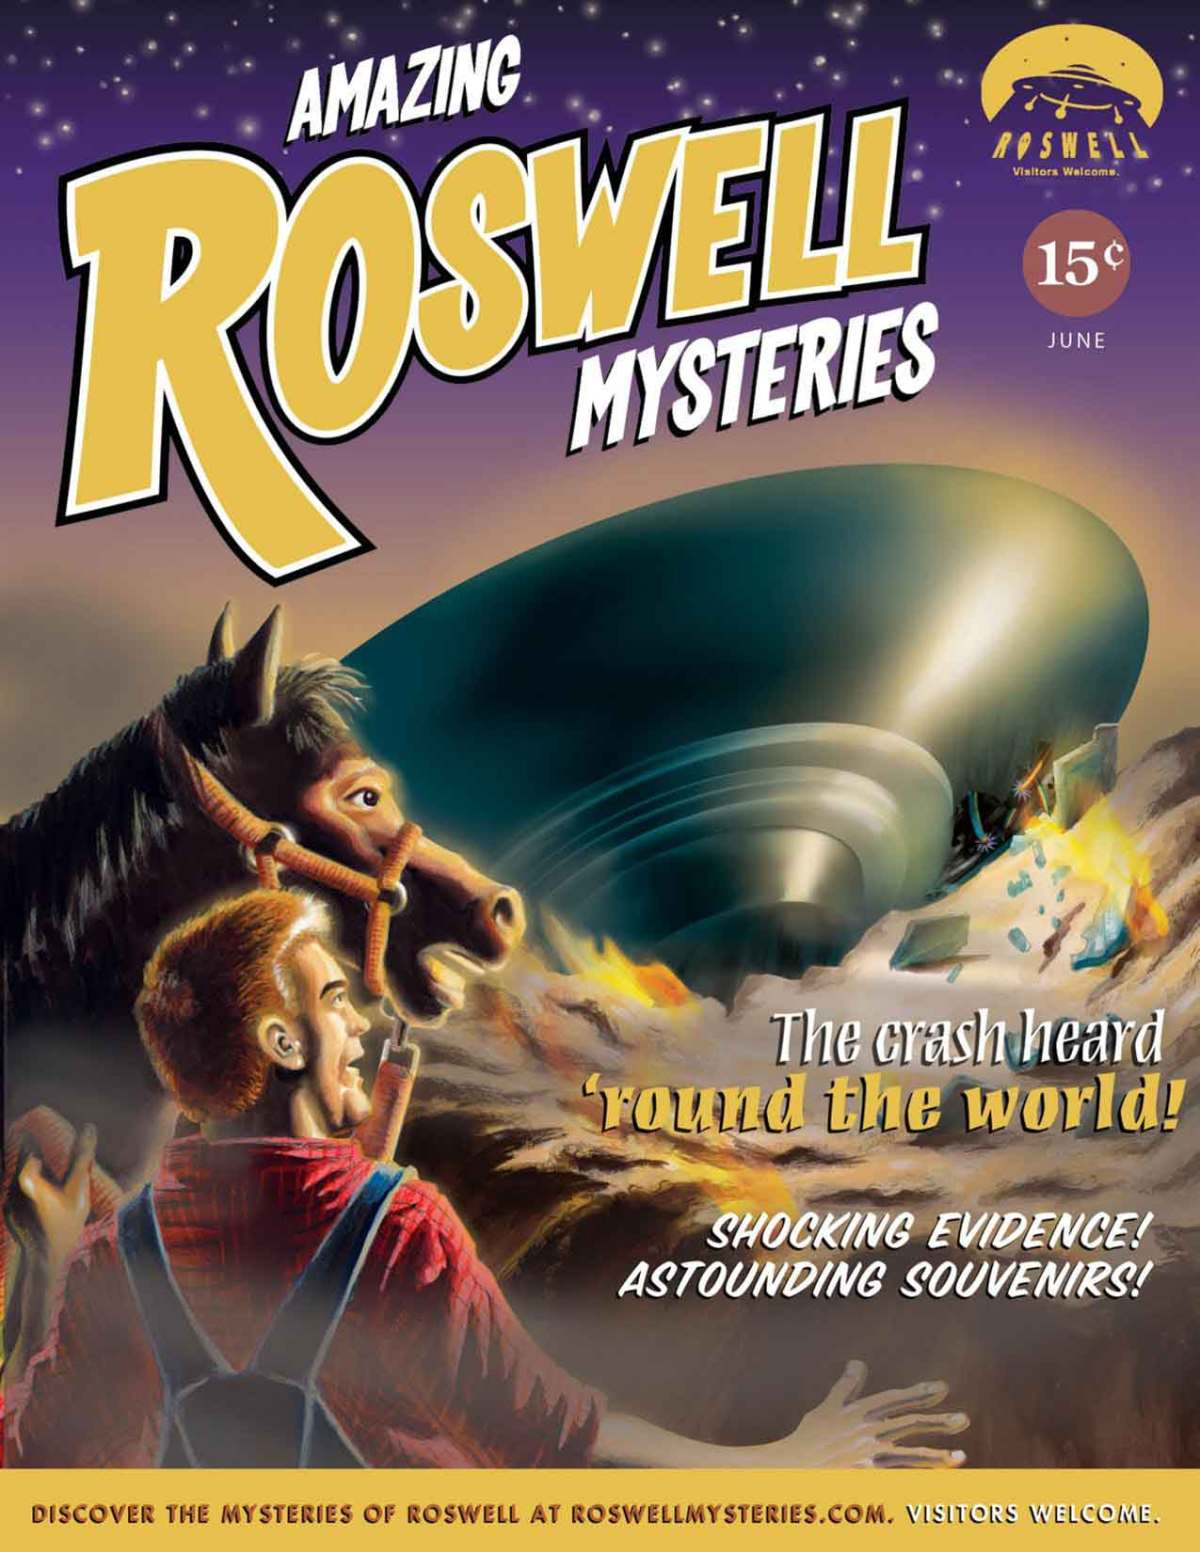 Amazing Roswell Mysteries: UFO